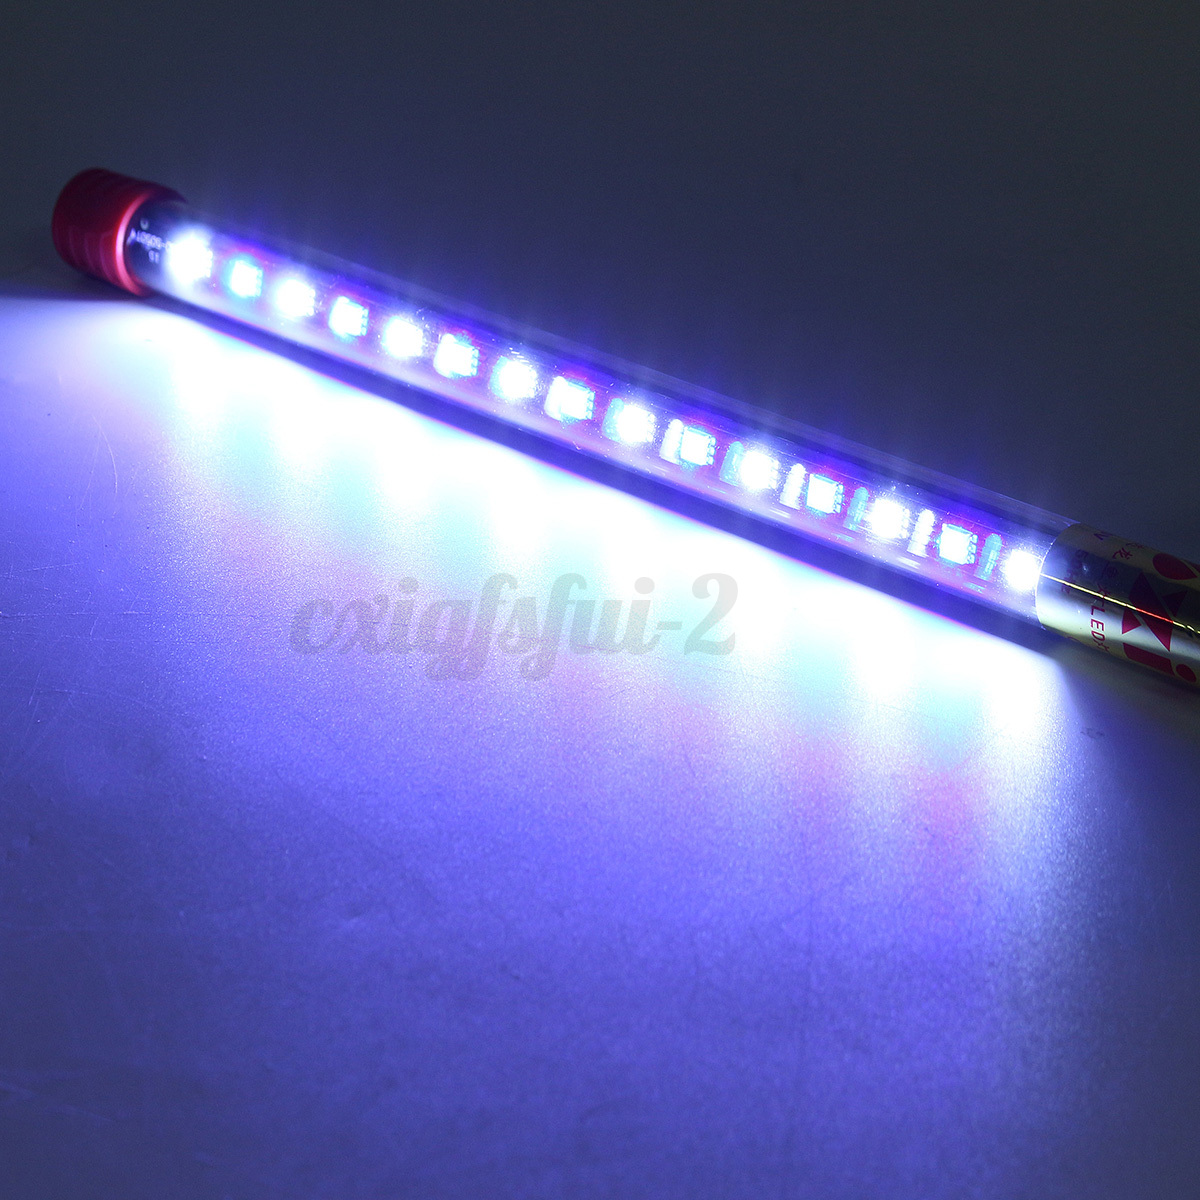 Submersible aquarium fish tank led bar blue white for Fish tank led light bar